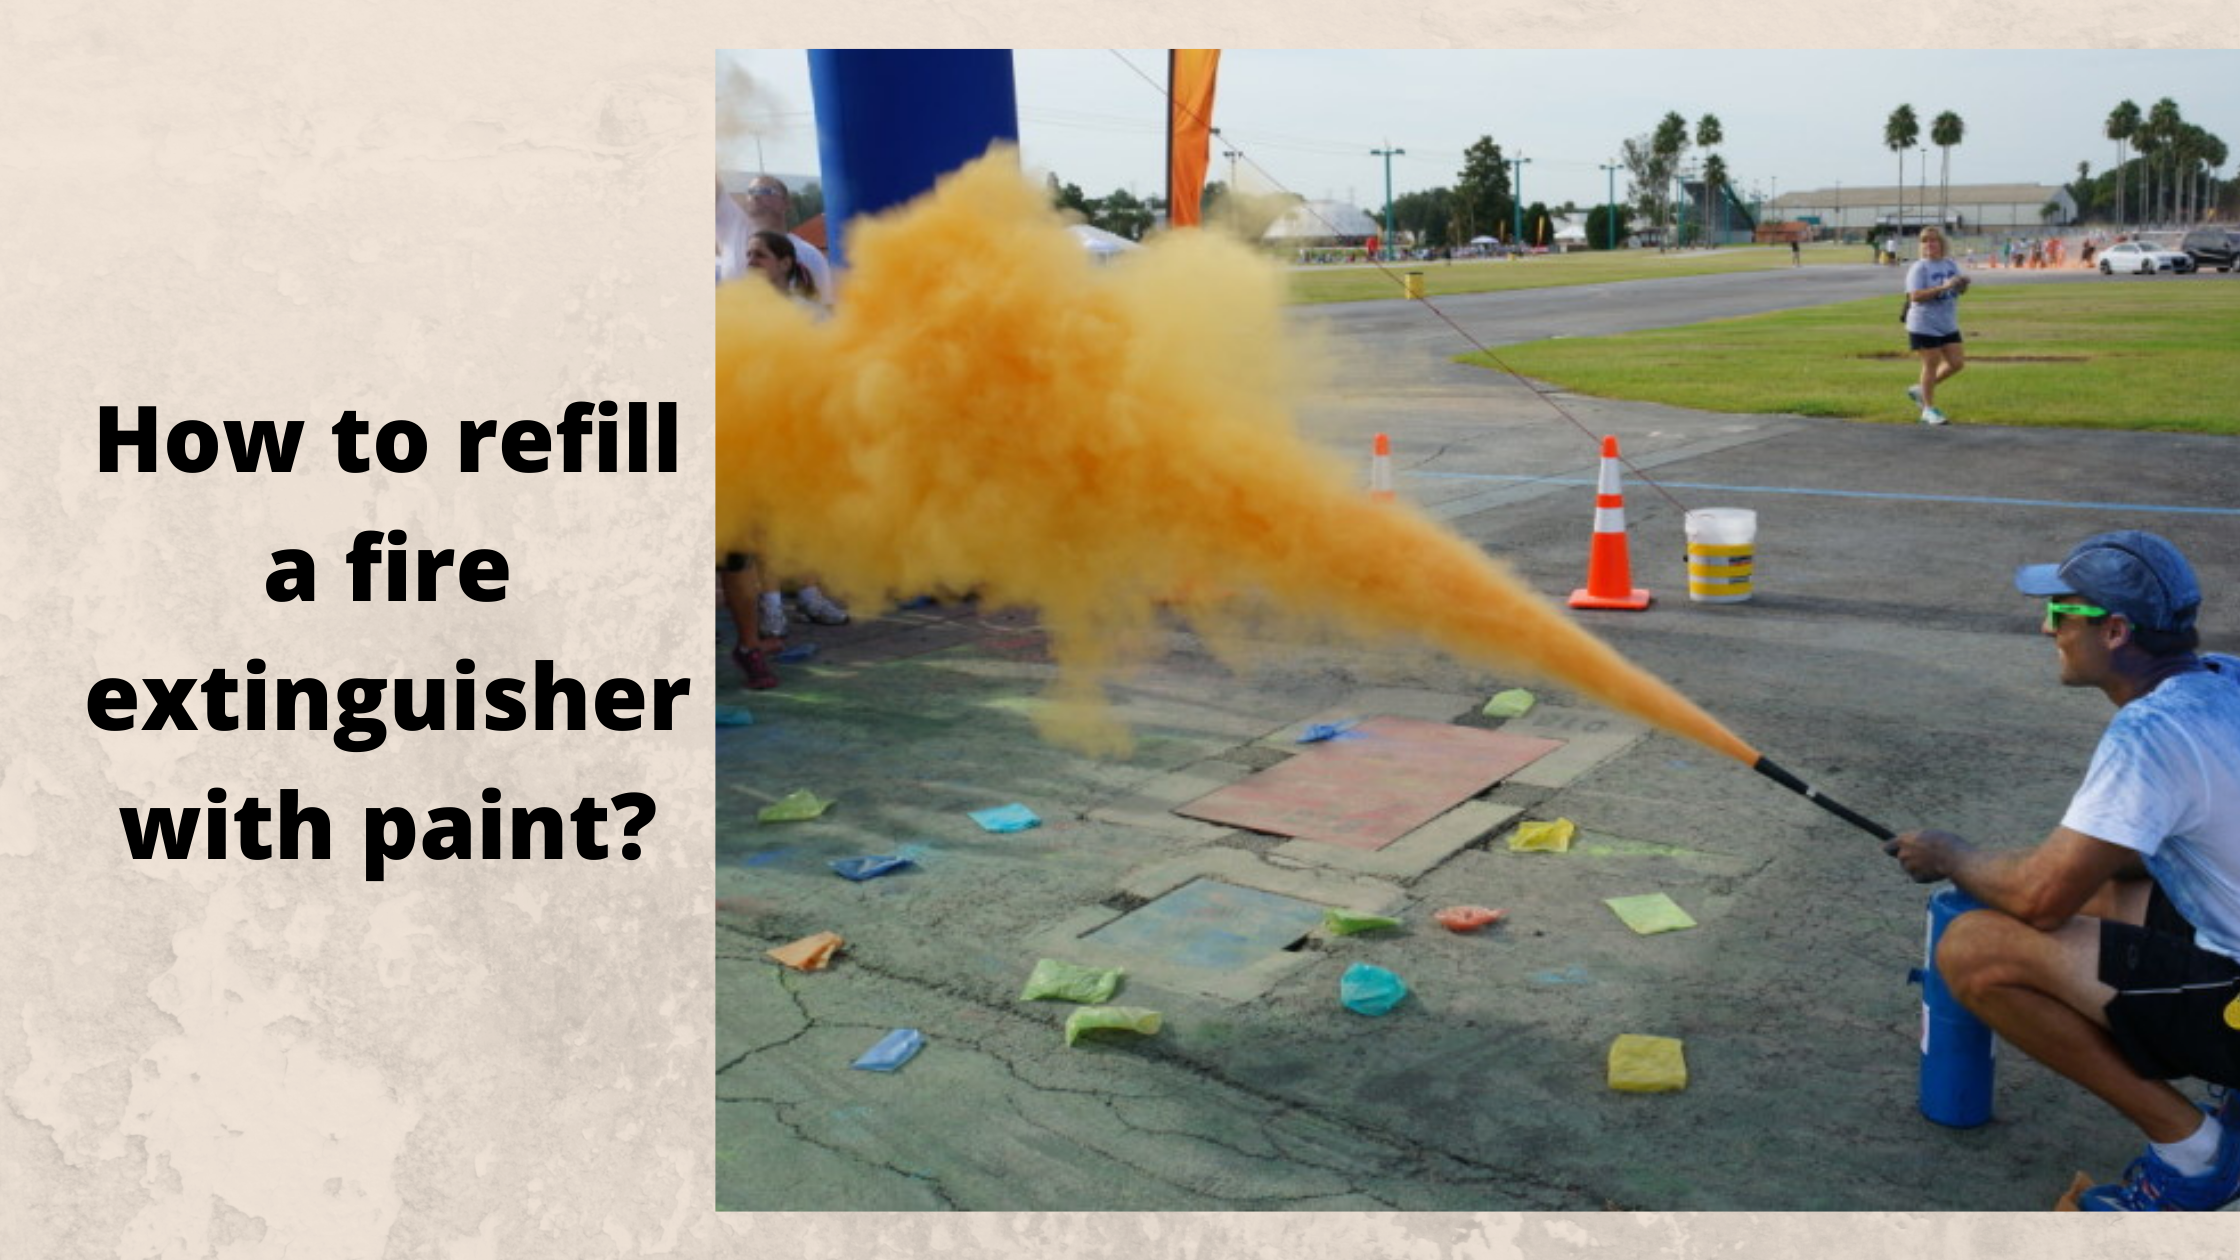 how to refill a fire extinguisher with paint